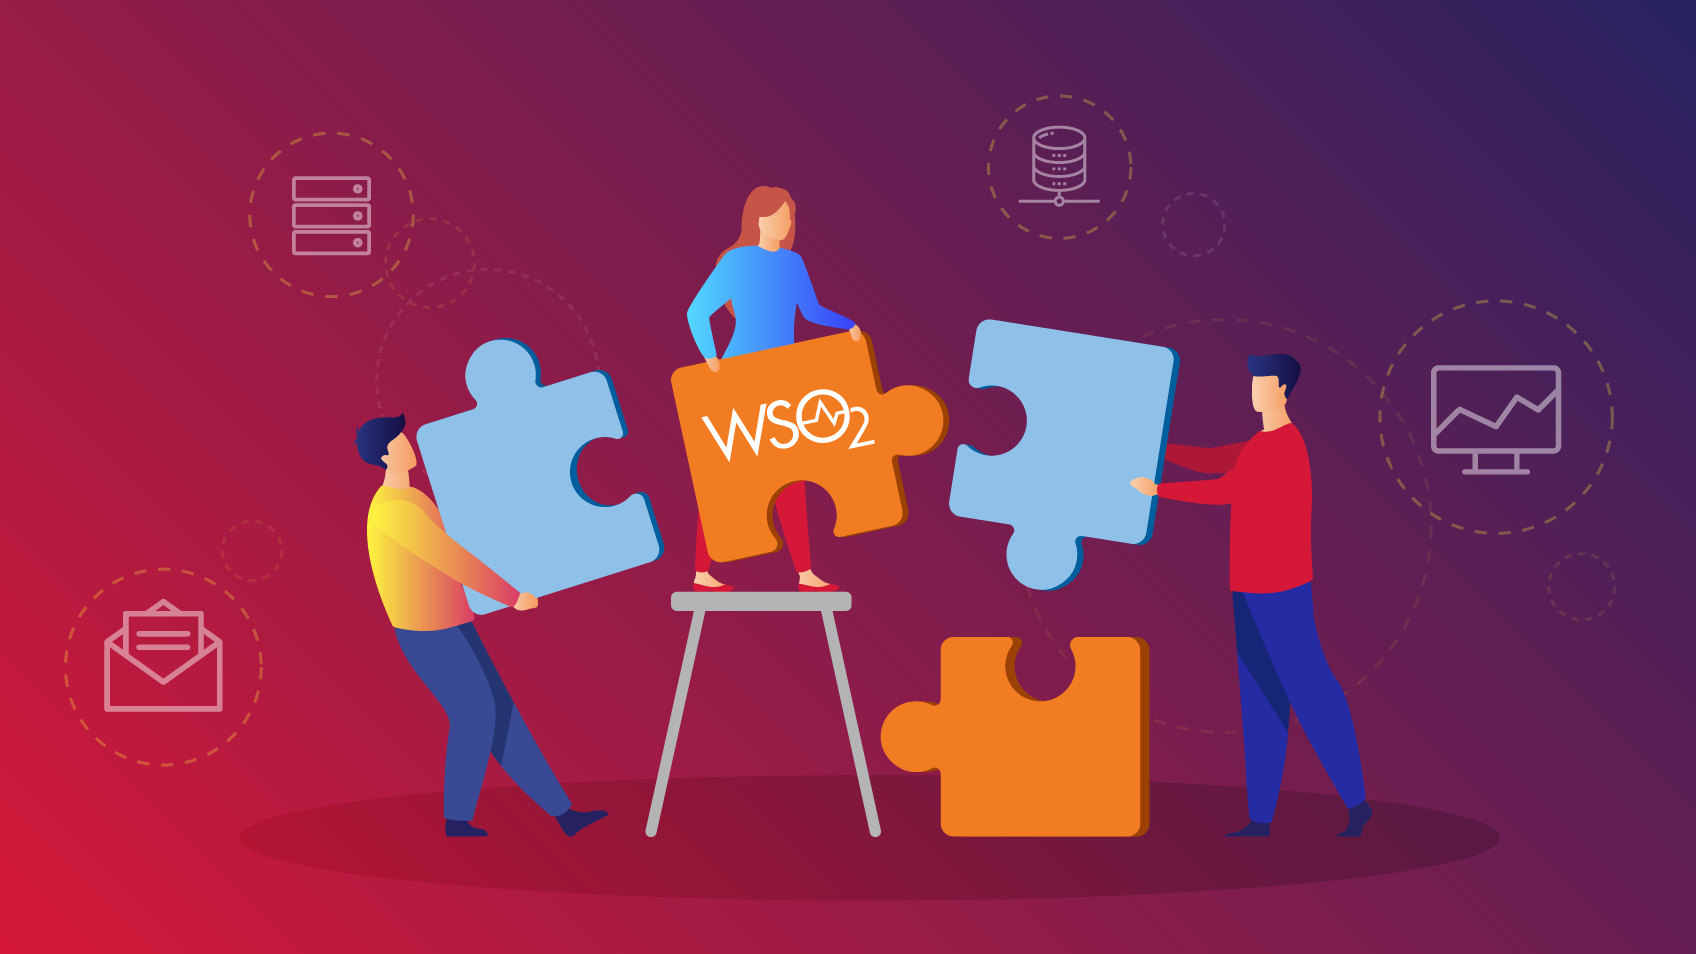 WSO2: a new approach to middleware